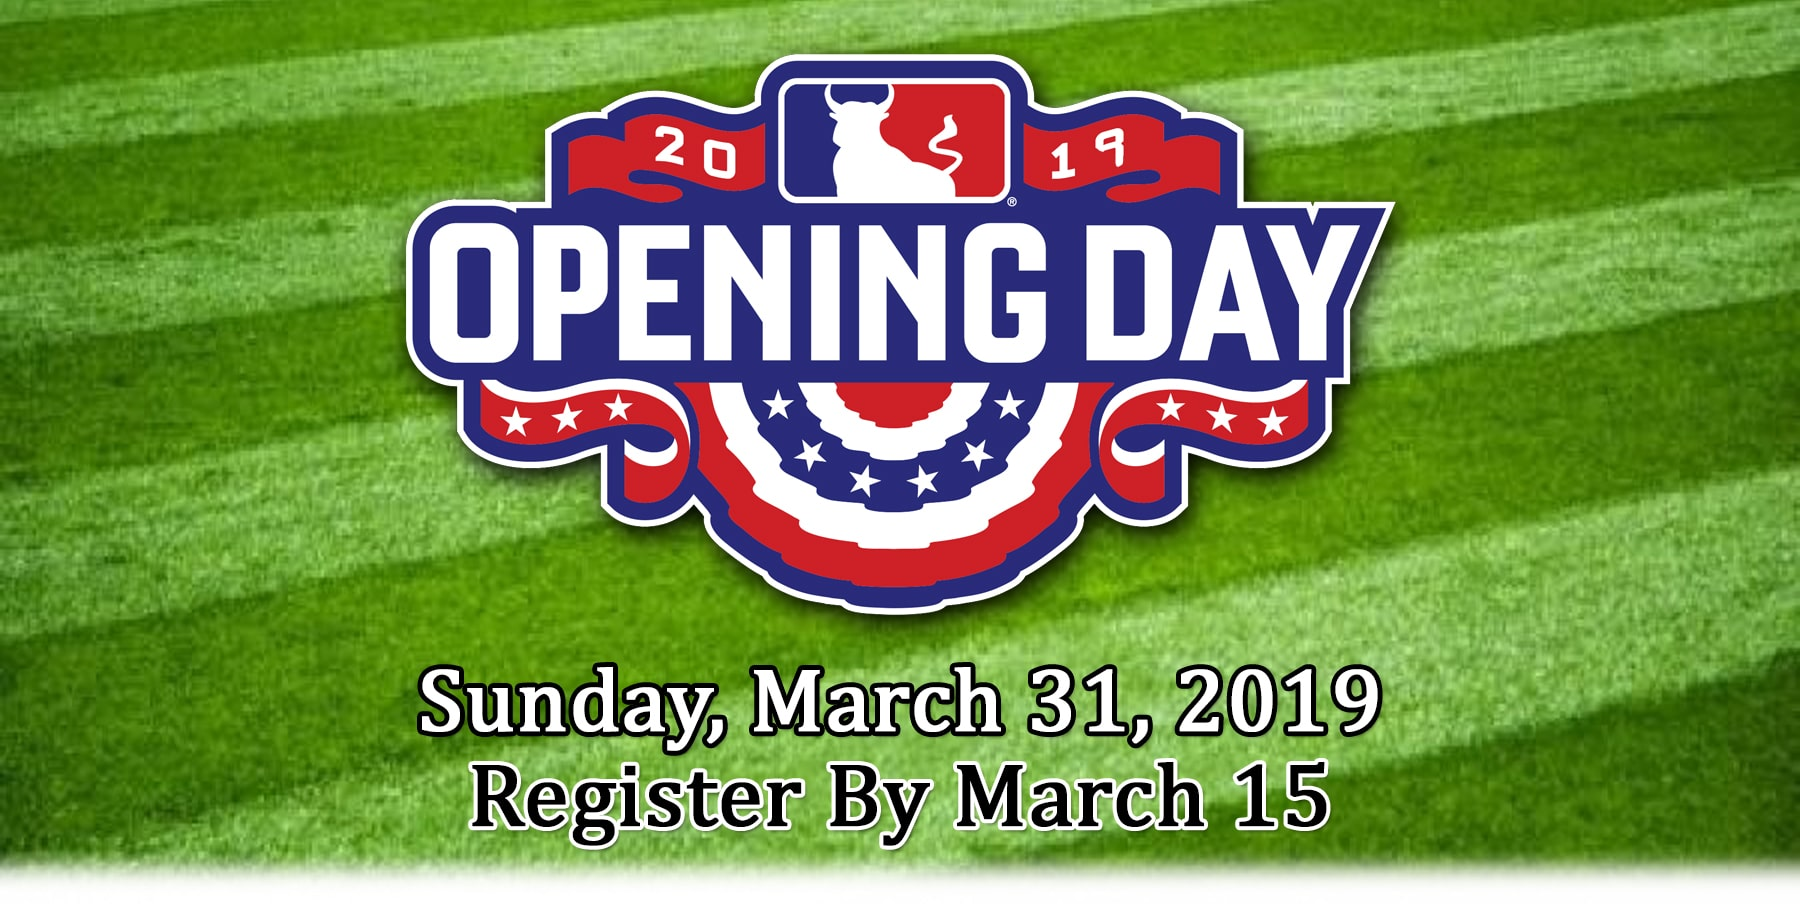 Opening Day for Durham Softball on March 31, 2019